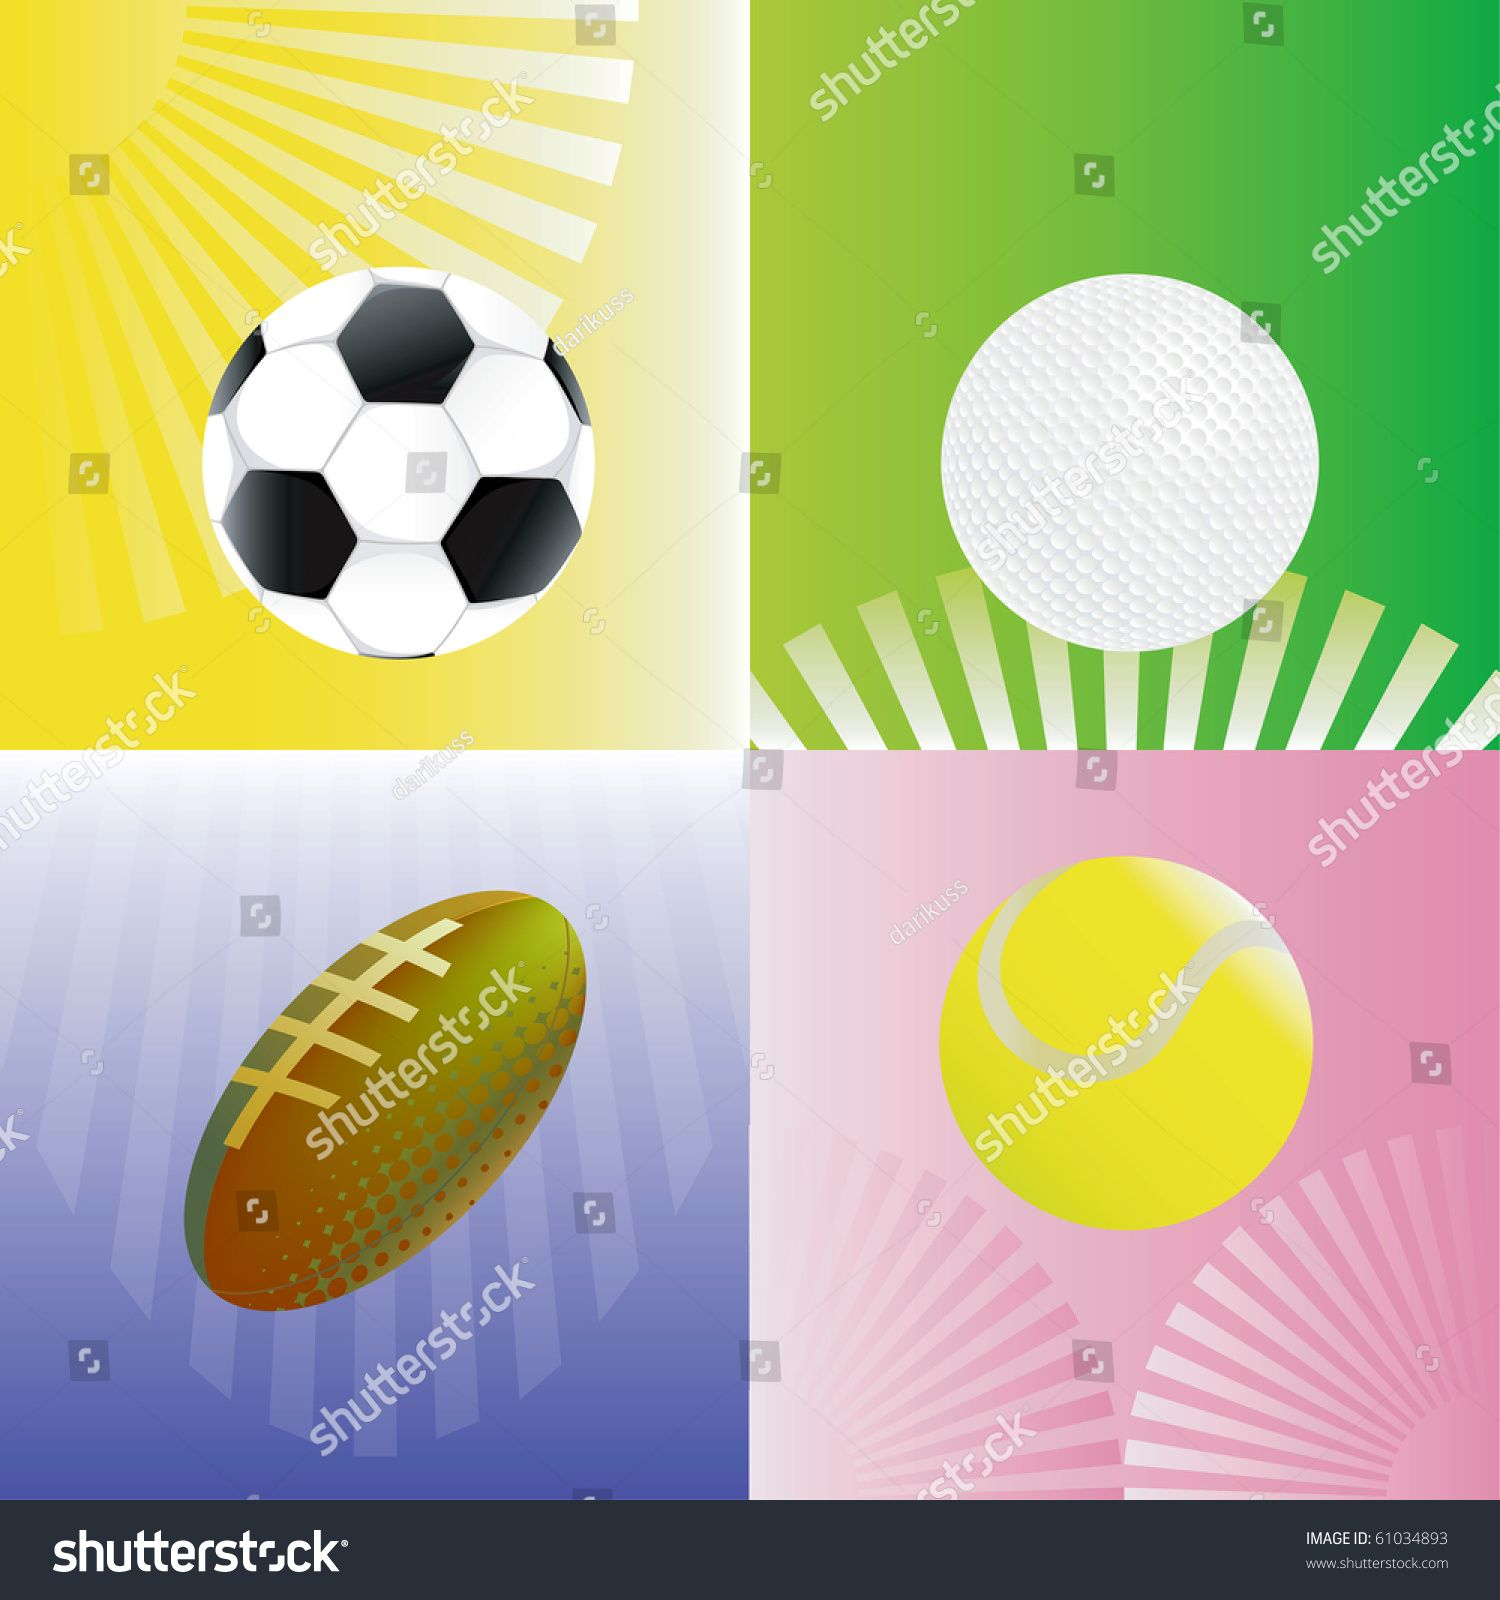 Abstract Background With Soccer Football Tennis And Golf Balls Vector Illustration Contain Illustrator In 2020 Macro Photography Tutorial Abstract Backgrounds Soccer